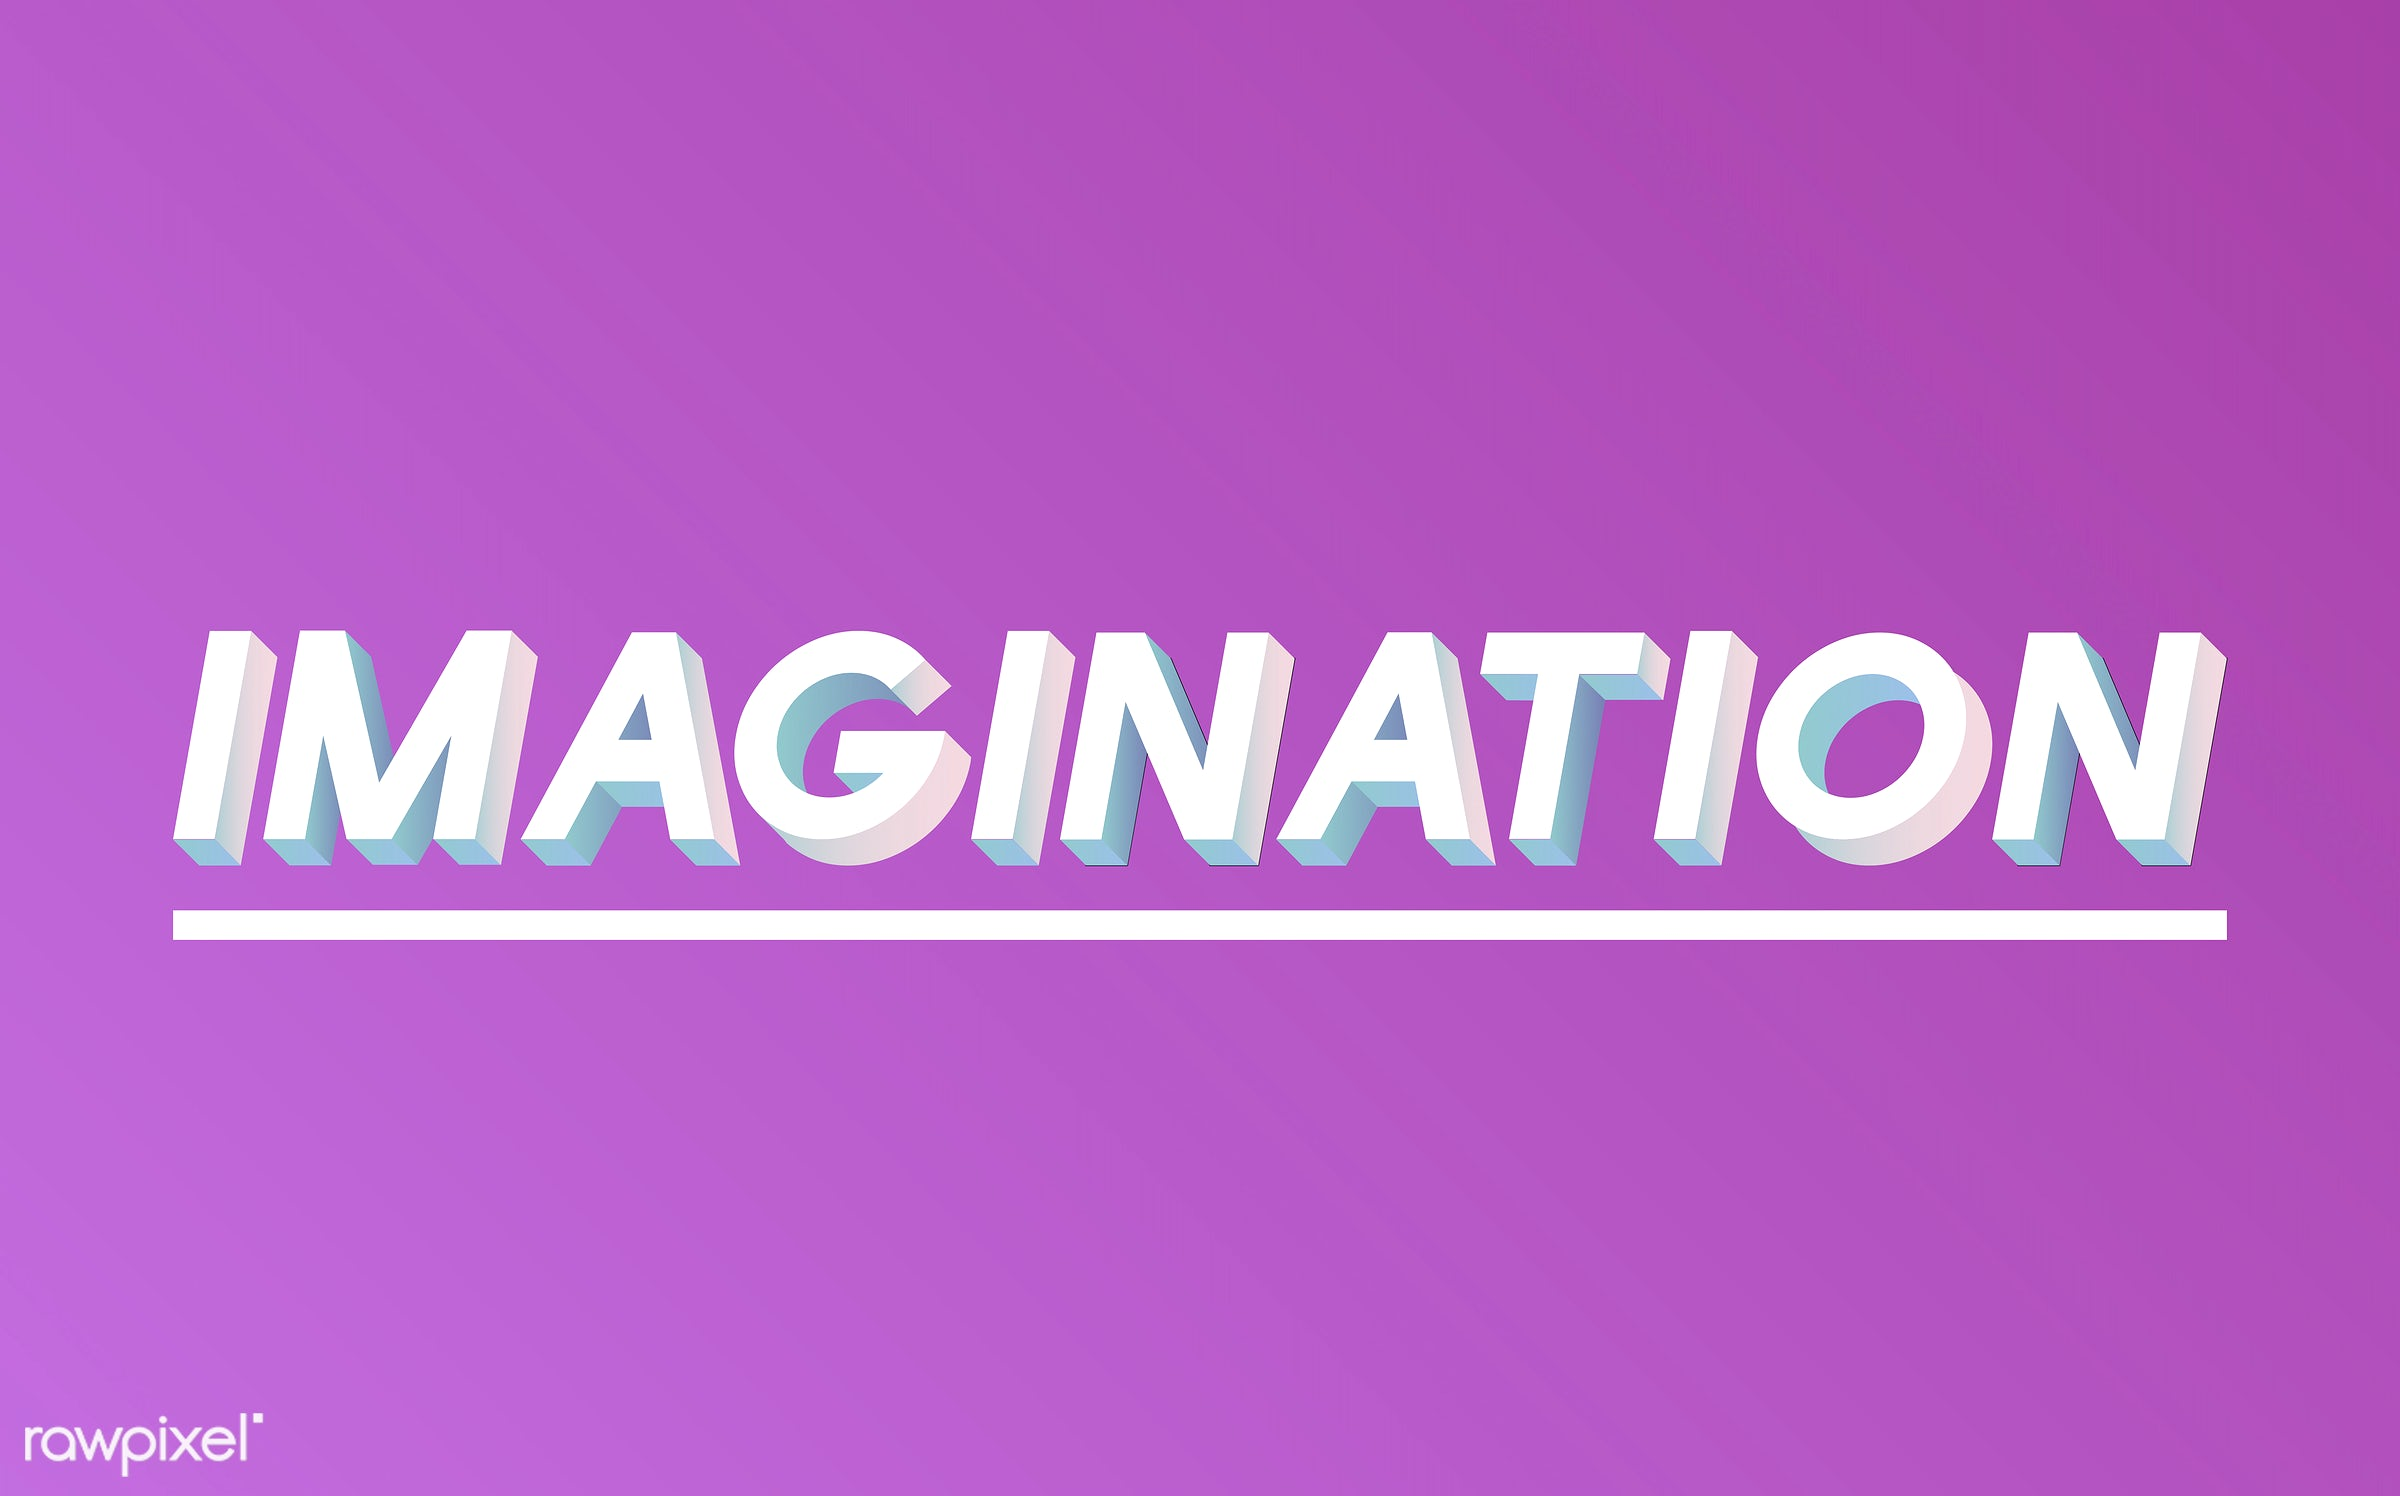 neon, colorful, 3d, three dimensional, vector, illustration, graphic, word, pink, white, imagination, imagine, ideas